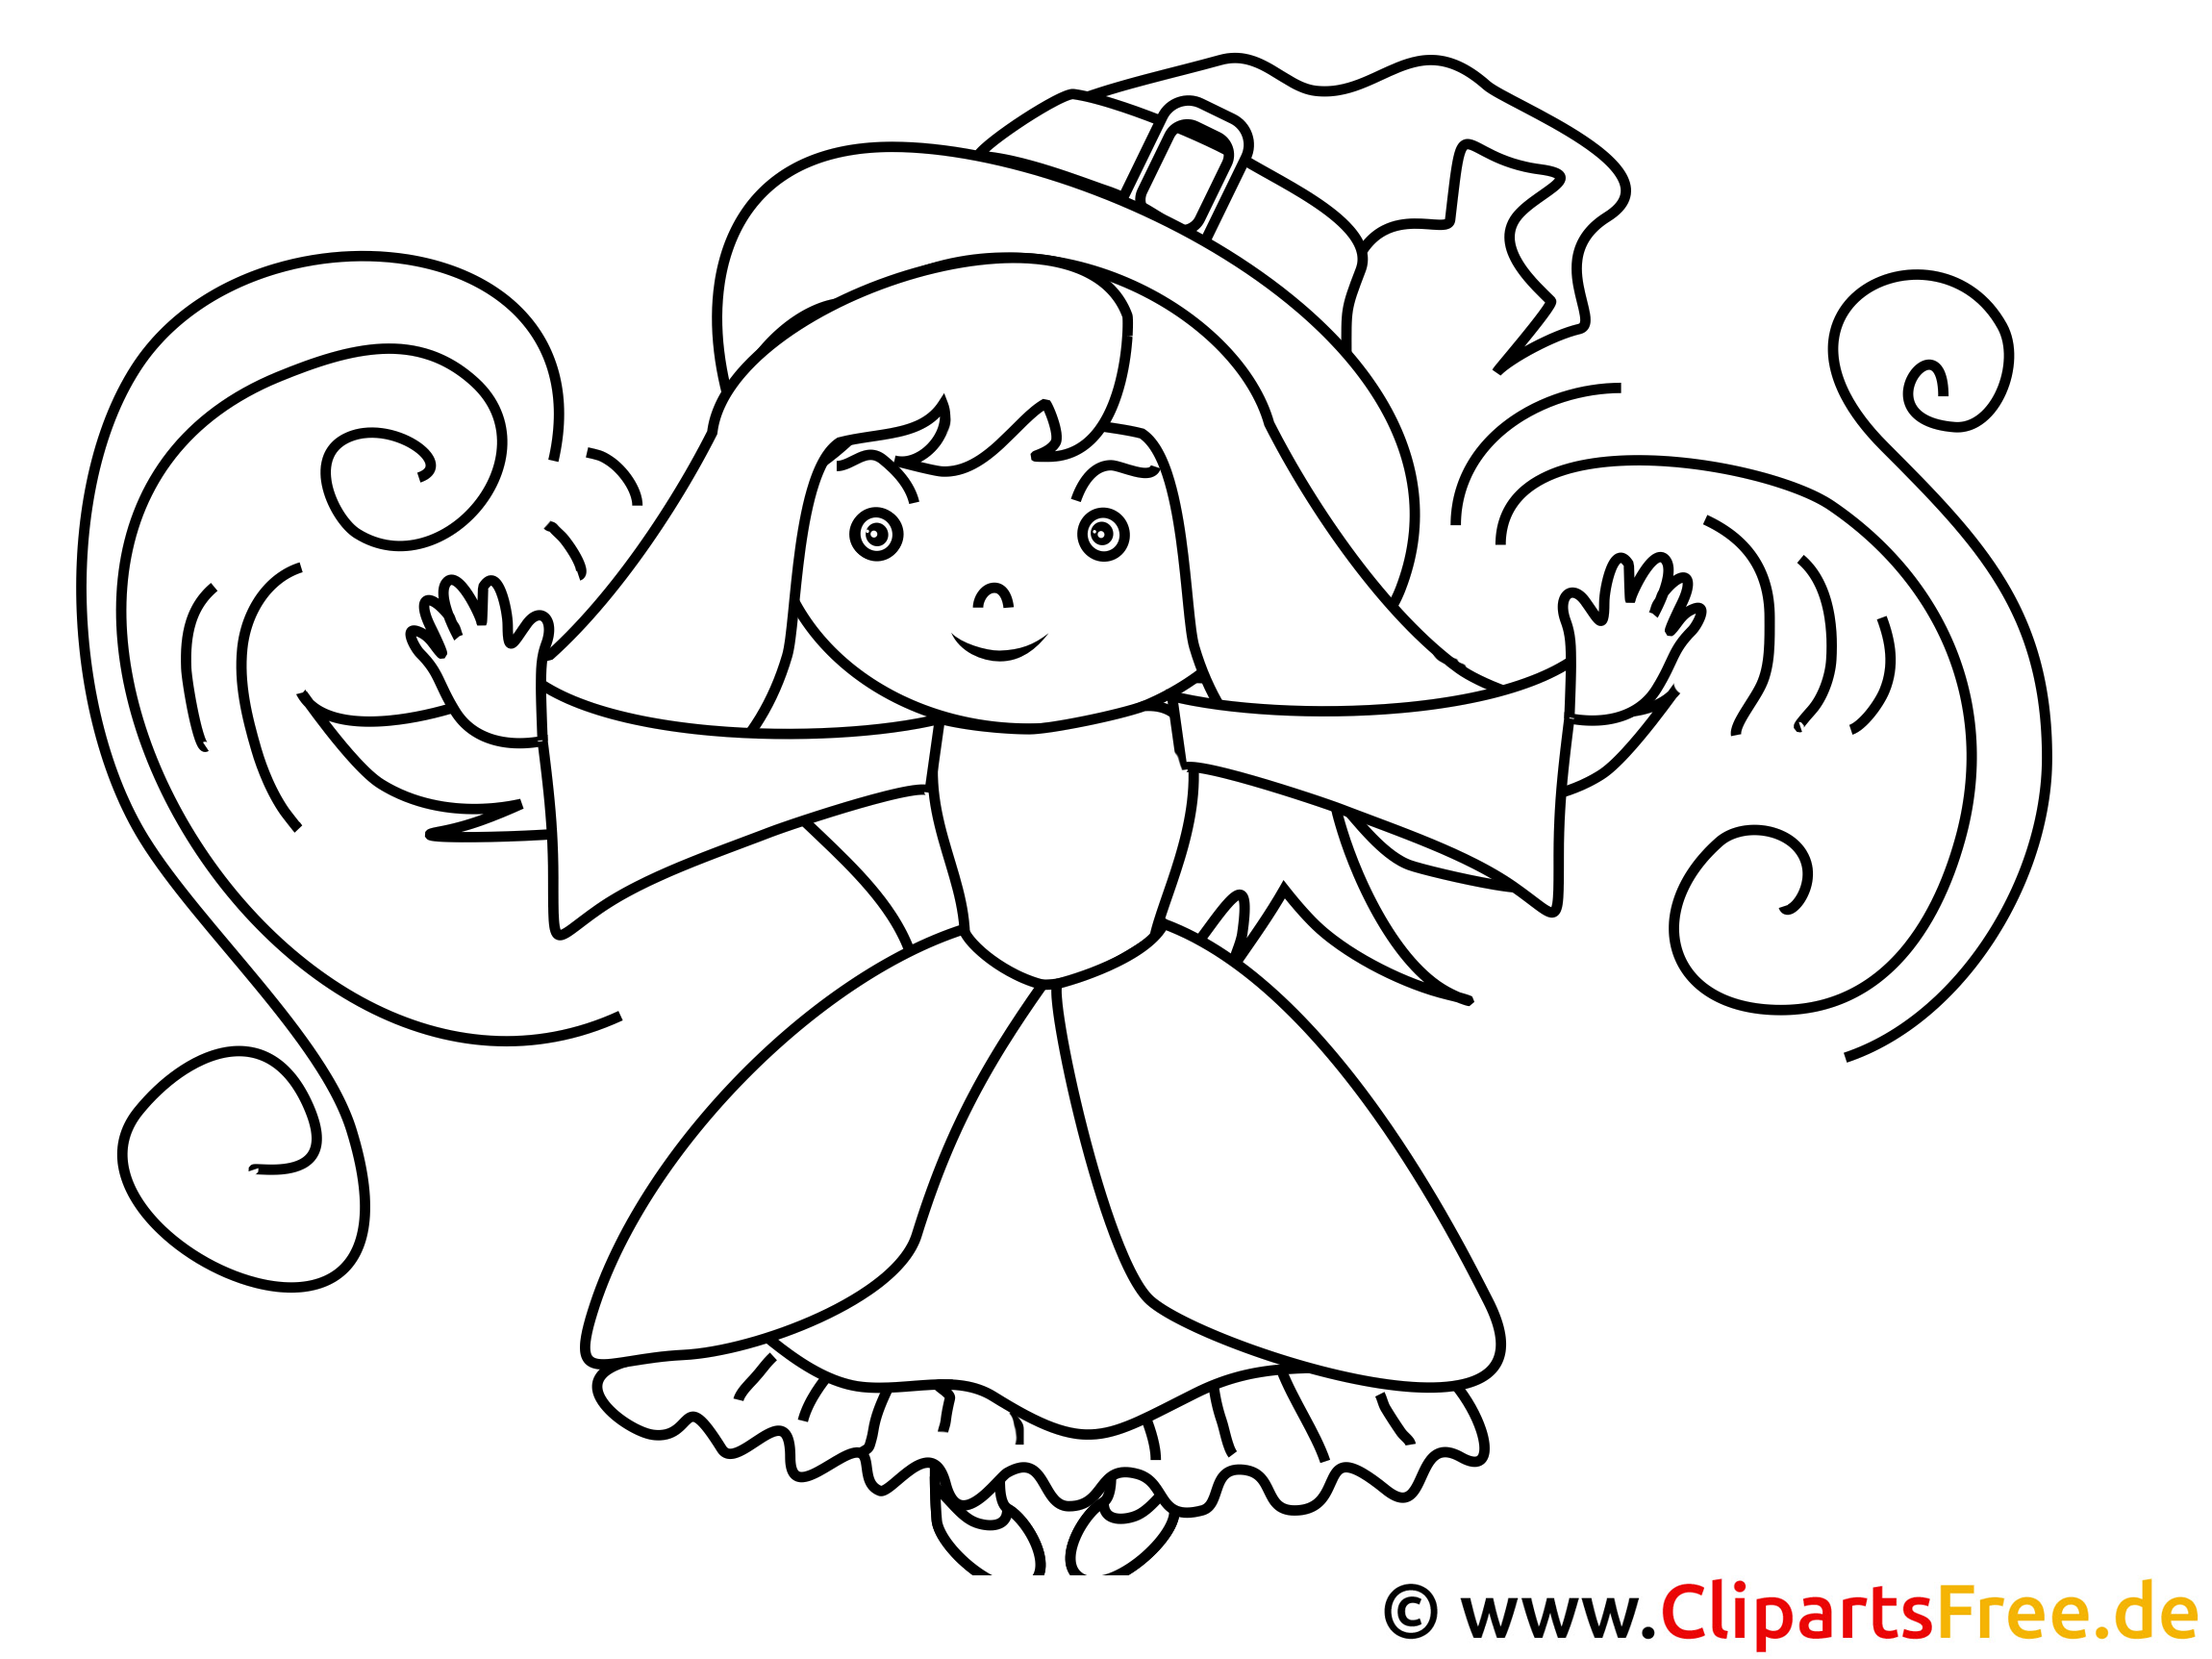 Little Witch Coloring Sheet for free download